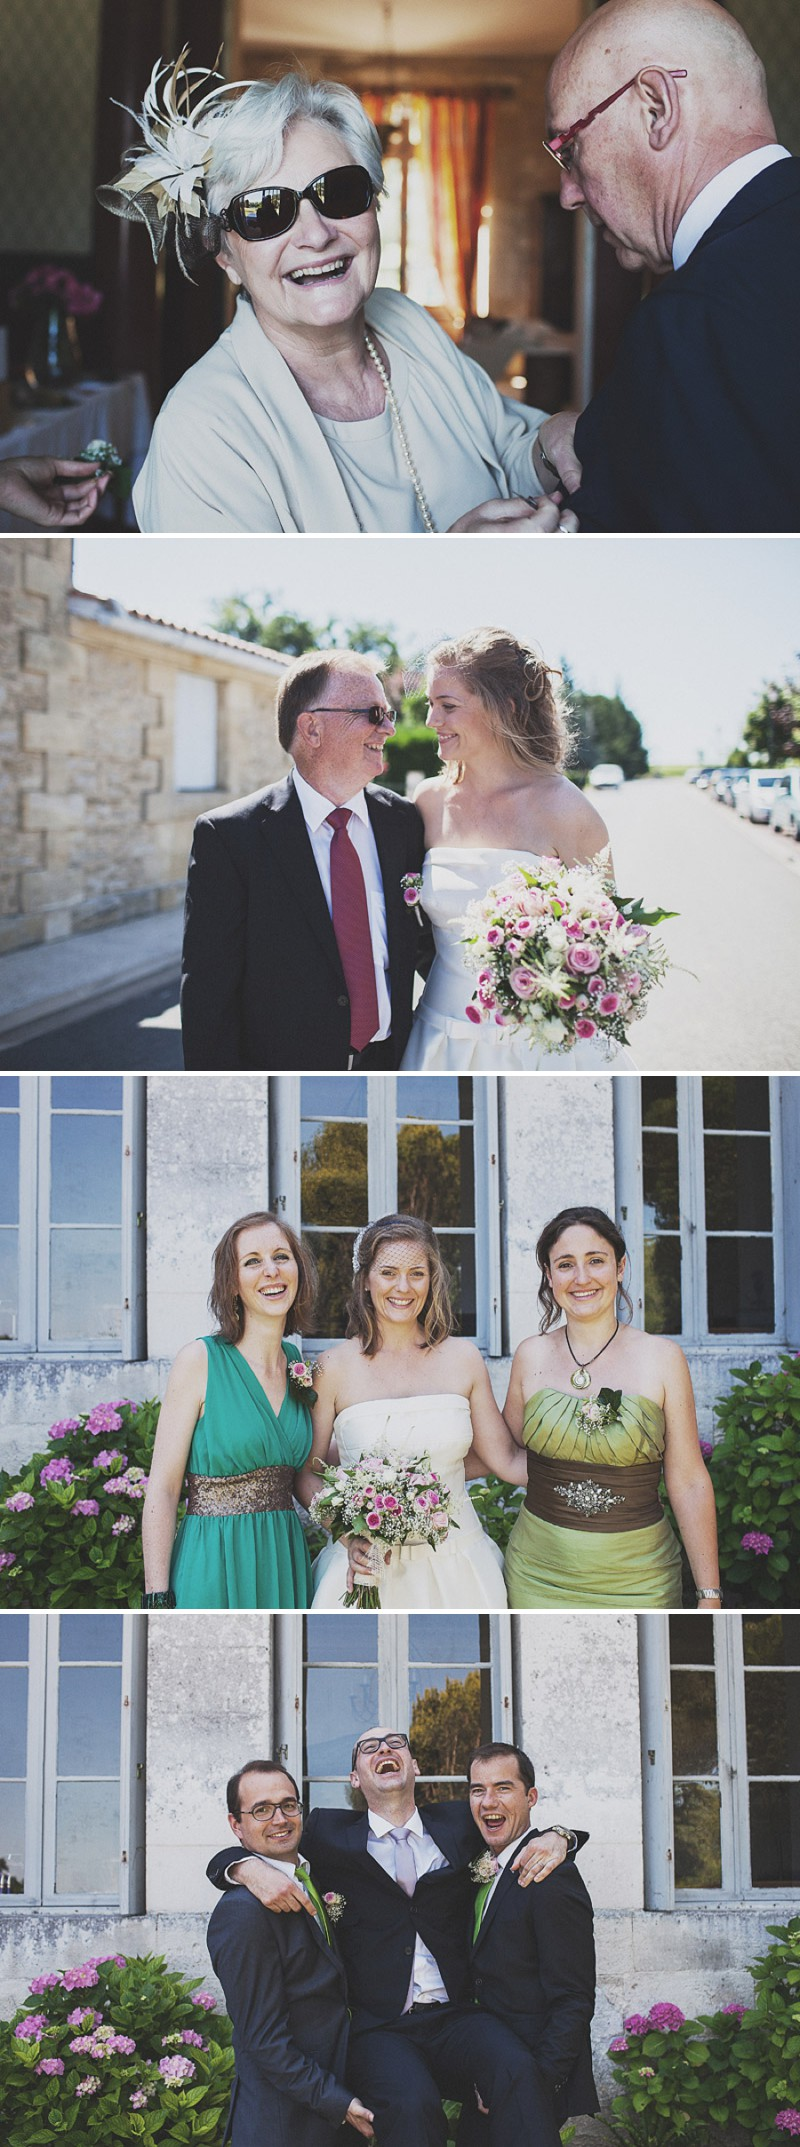 A Beautiful Rustic French Destination Wedding At Rivière de Prats In Gironde With A Rosa Clara Wedding Dress And A Pink Rose Bouquet And An Oyster And Cocktail Buffet By Anna Hardy Photography._0002